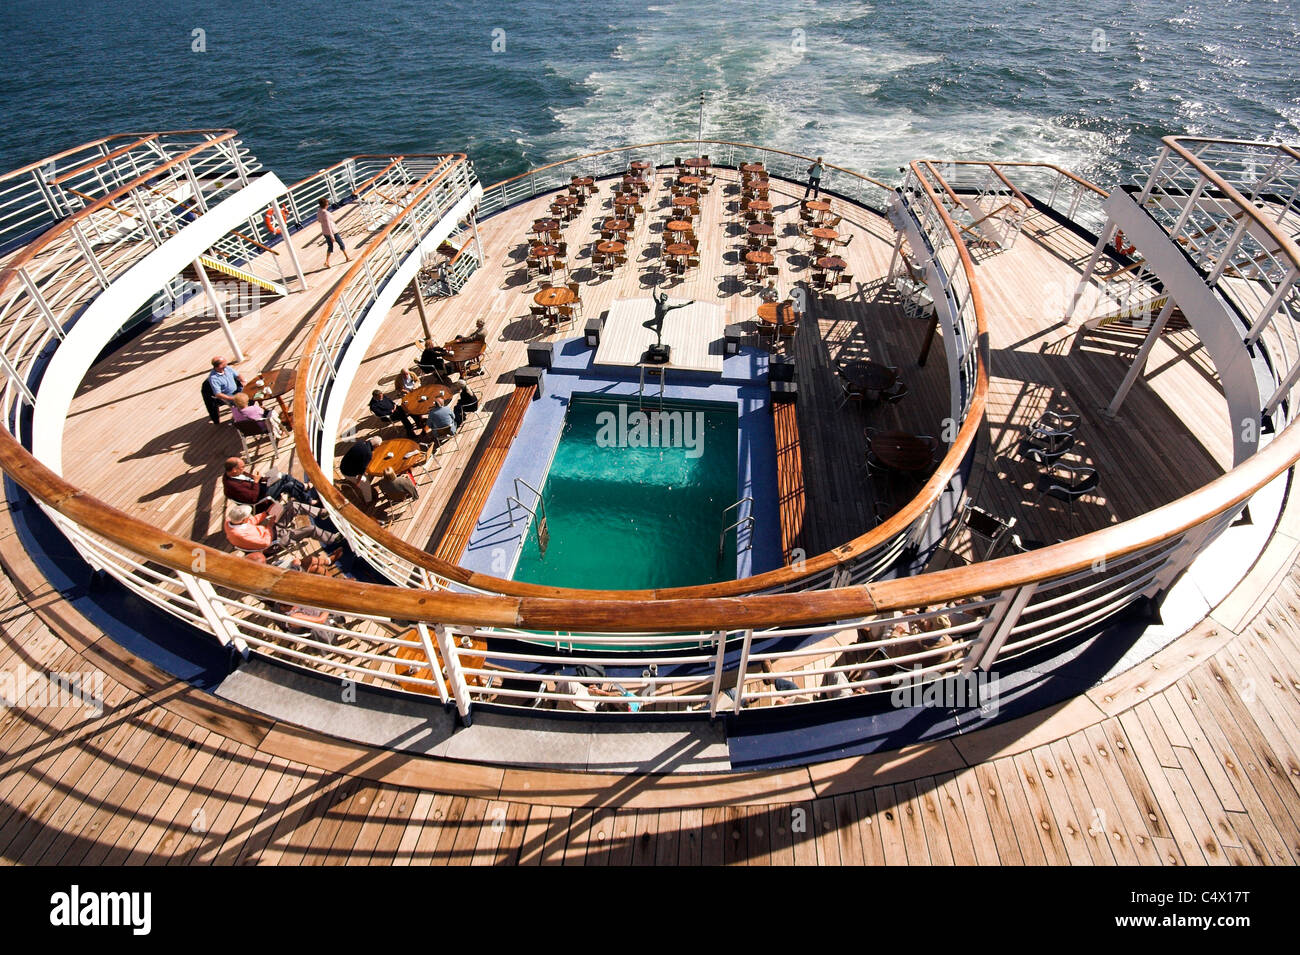 Pool and lido deck of a cruise ship in sunshine Stock Photo